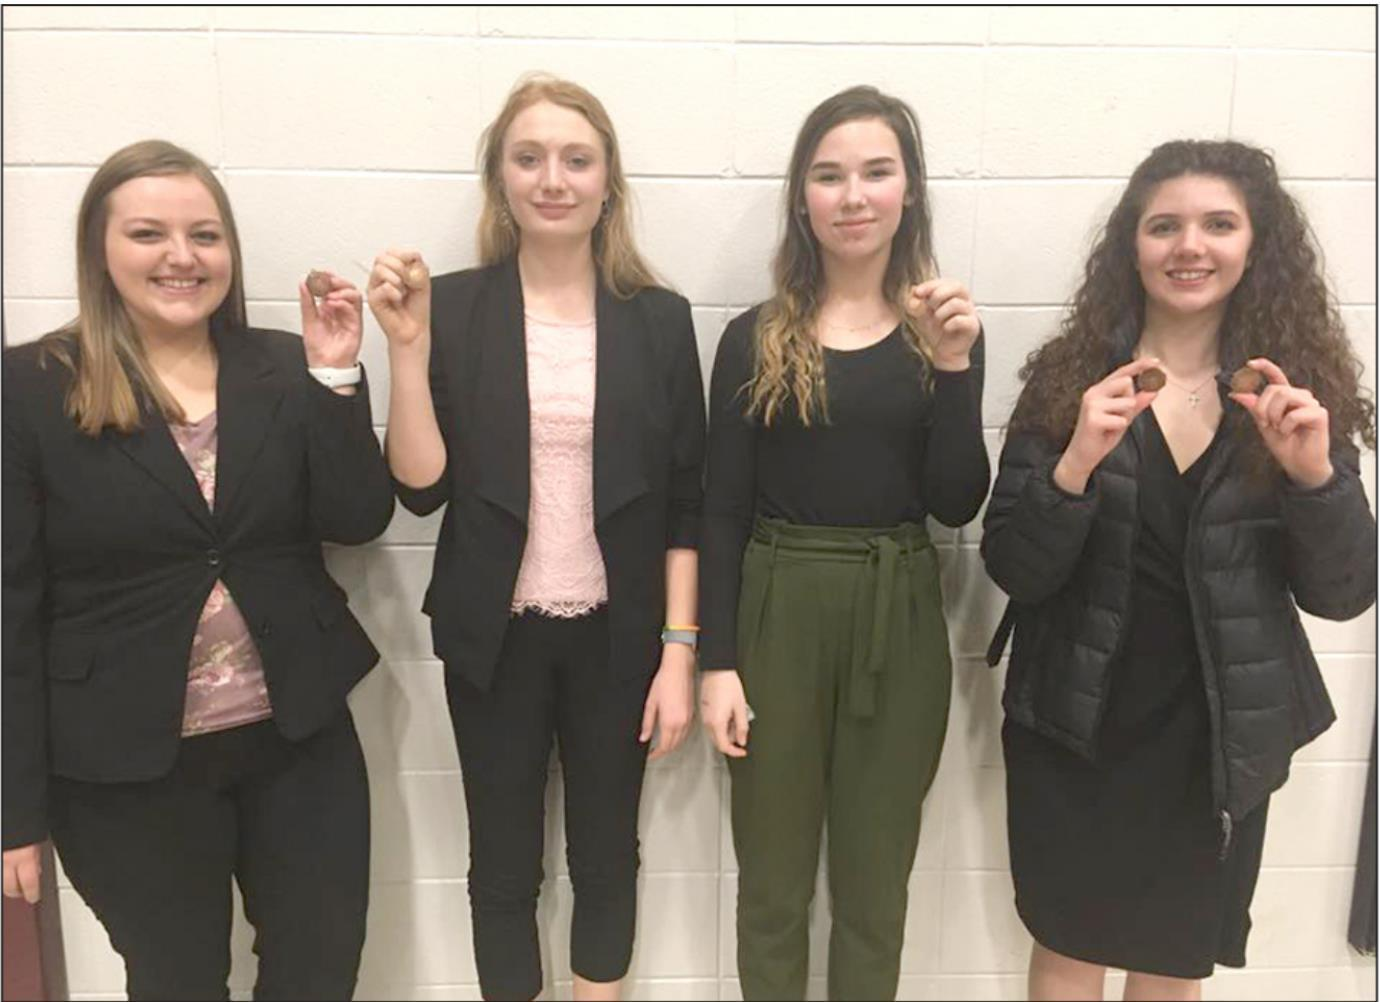 Medaling at the Centura speech meet last week were, left to right, Zoe Anderson, Taylor Schubauer, Miracle Kenkel, and Delaney Tracy. (–courtesy photo)